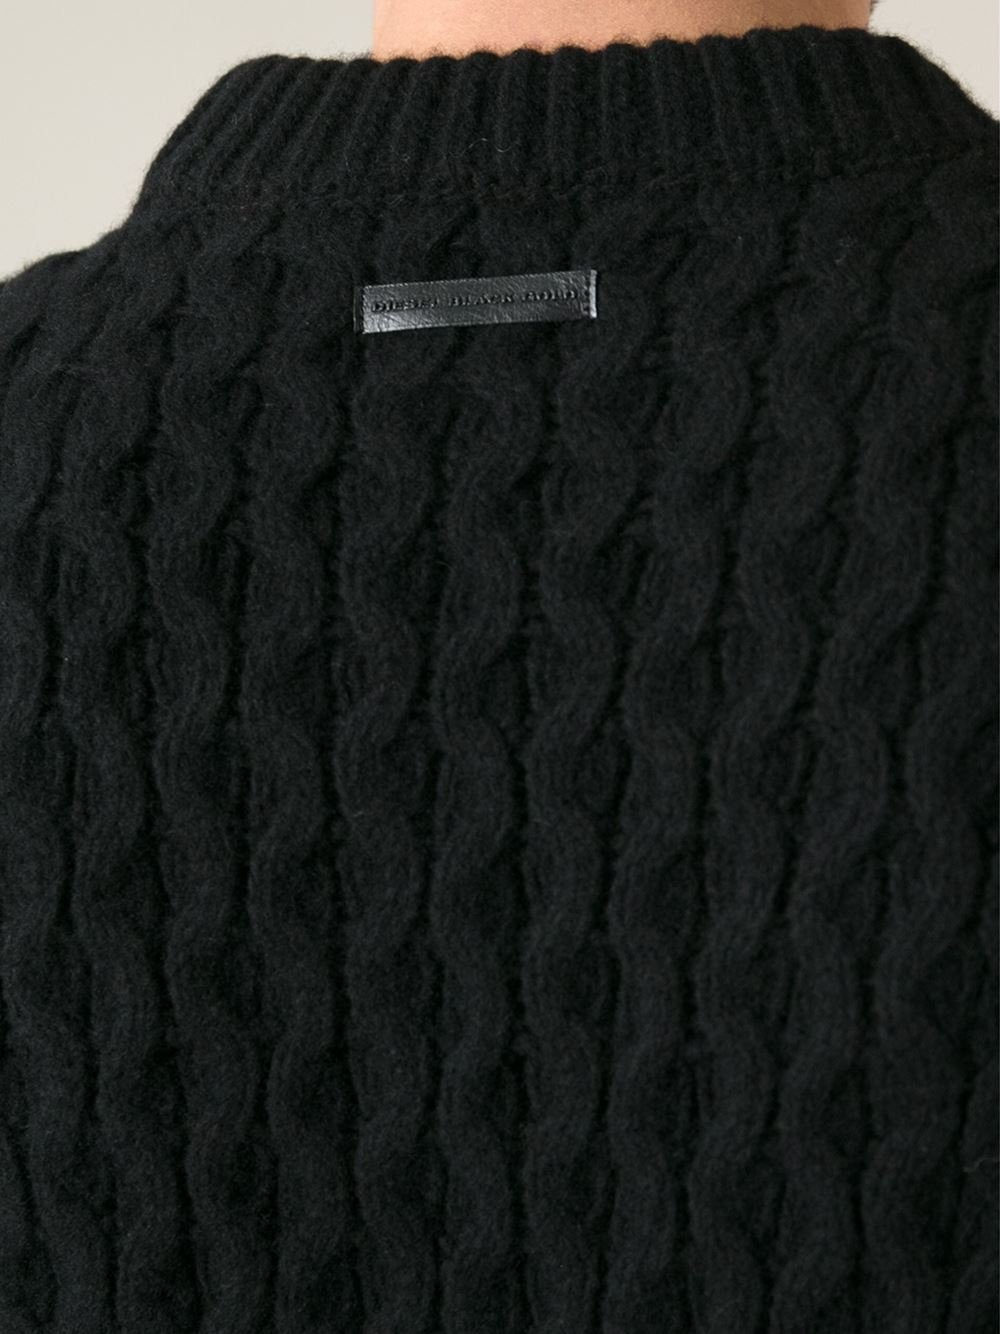 Diesel Cable Knit Sweater in Black for Men | Lyst